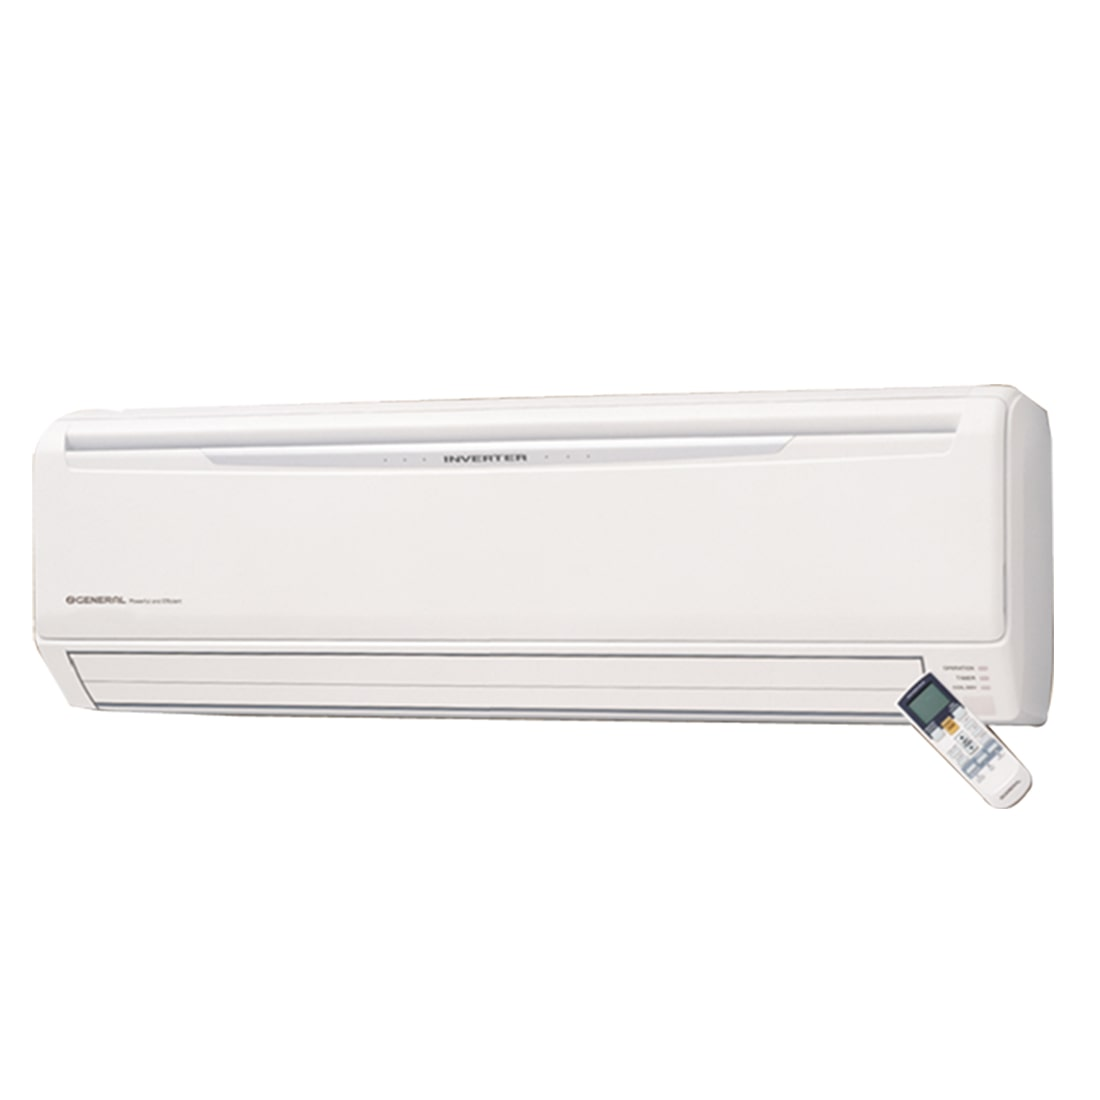 O General 1.5 Ton 5 Star Inverter Split AC (Copper Condensor, ASGA18JCC, White)